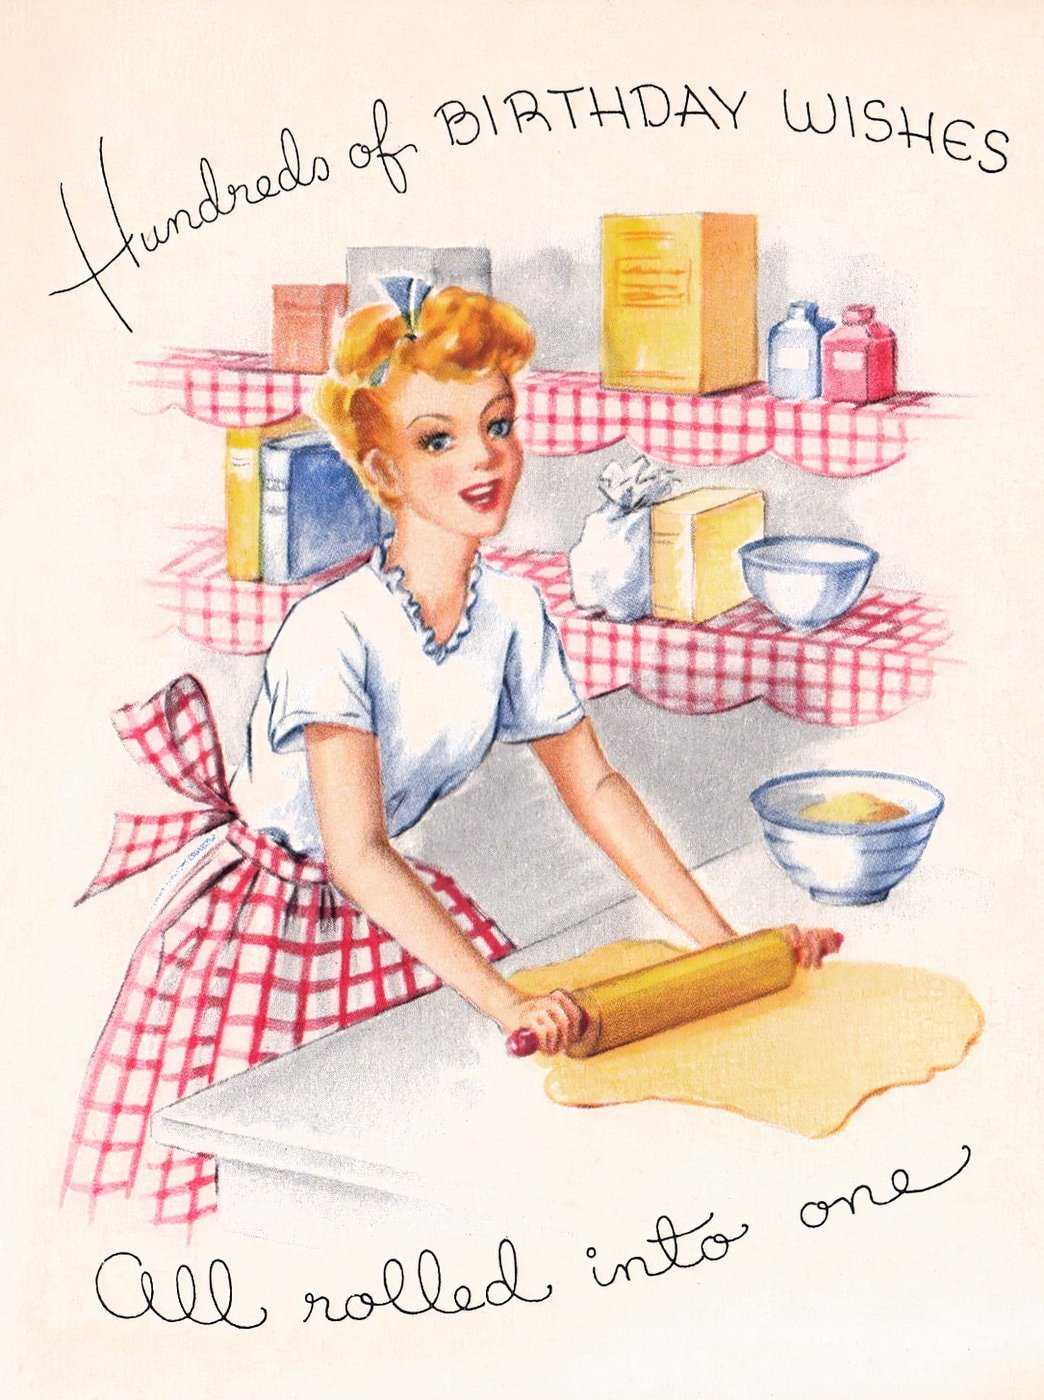 Hundreds of birthday wishes - Vintage 1940s greeting card